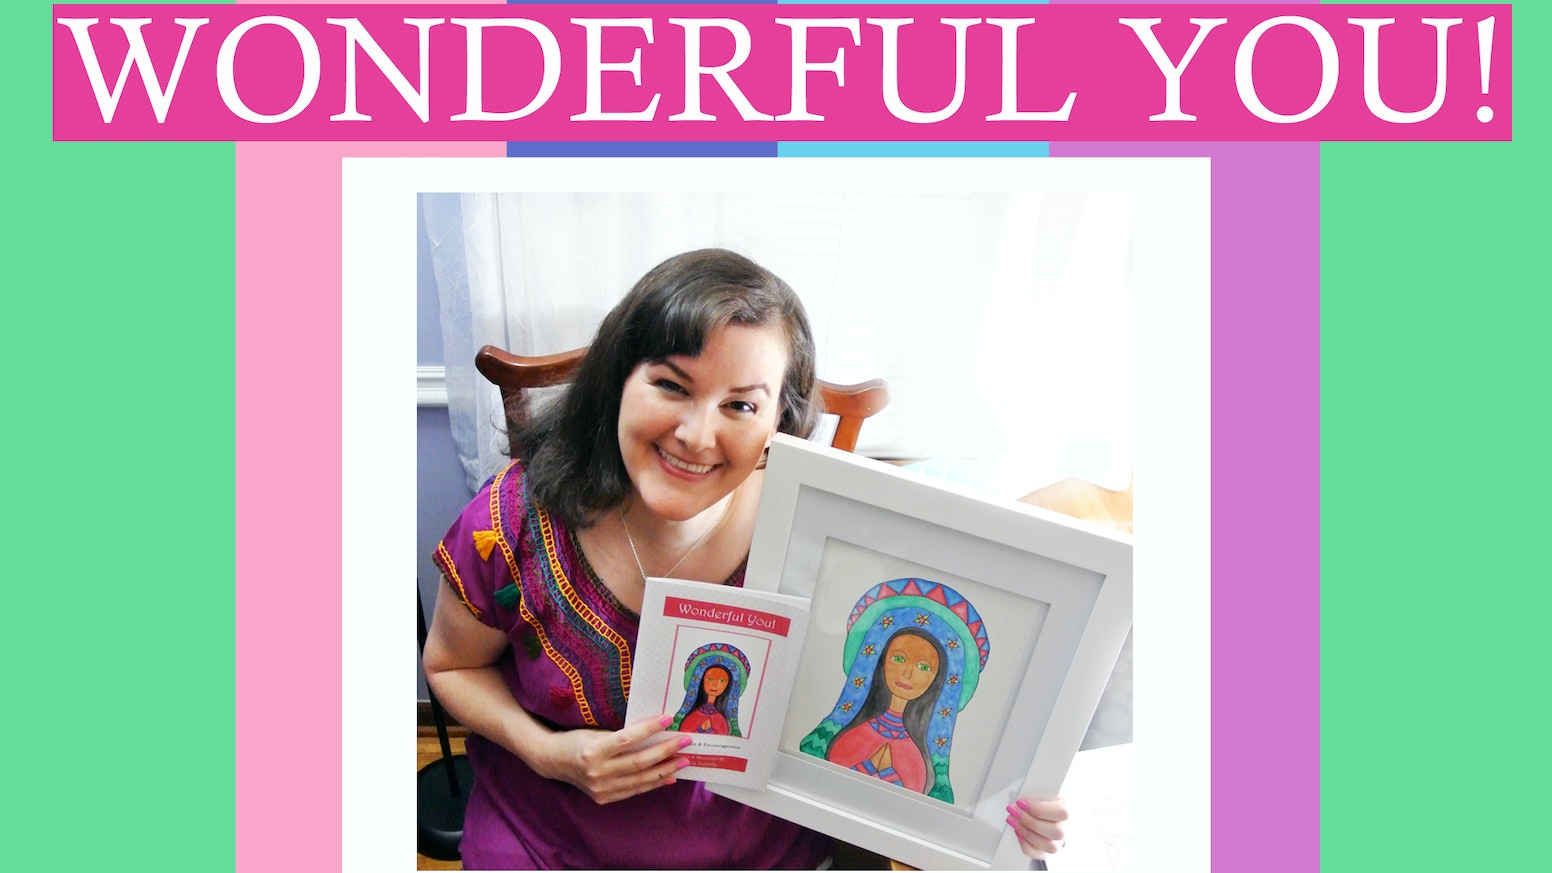 Know a wonderful lady? Brighten her day with this uplifting book. Perfect for teens, graduates, teachers & moms. Custom dedication.